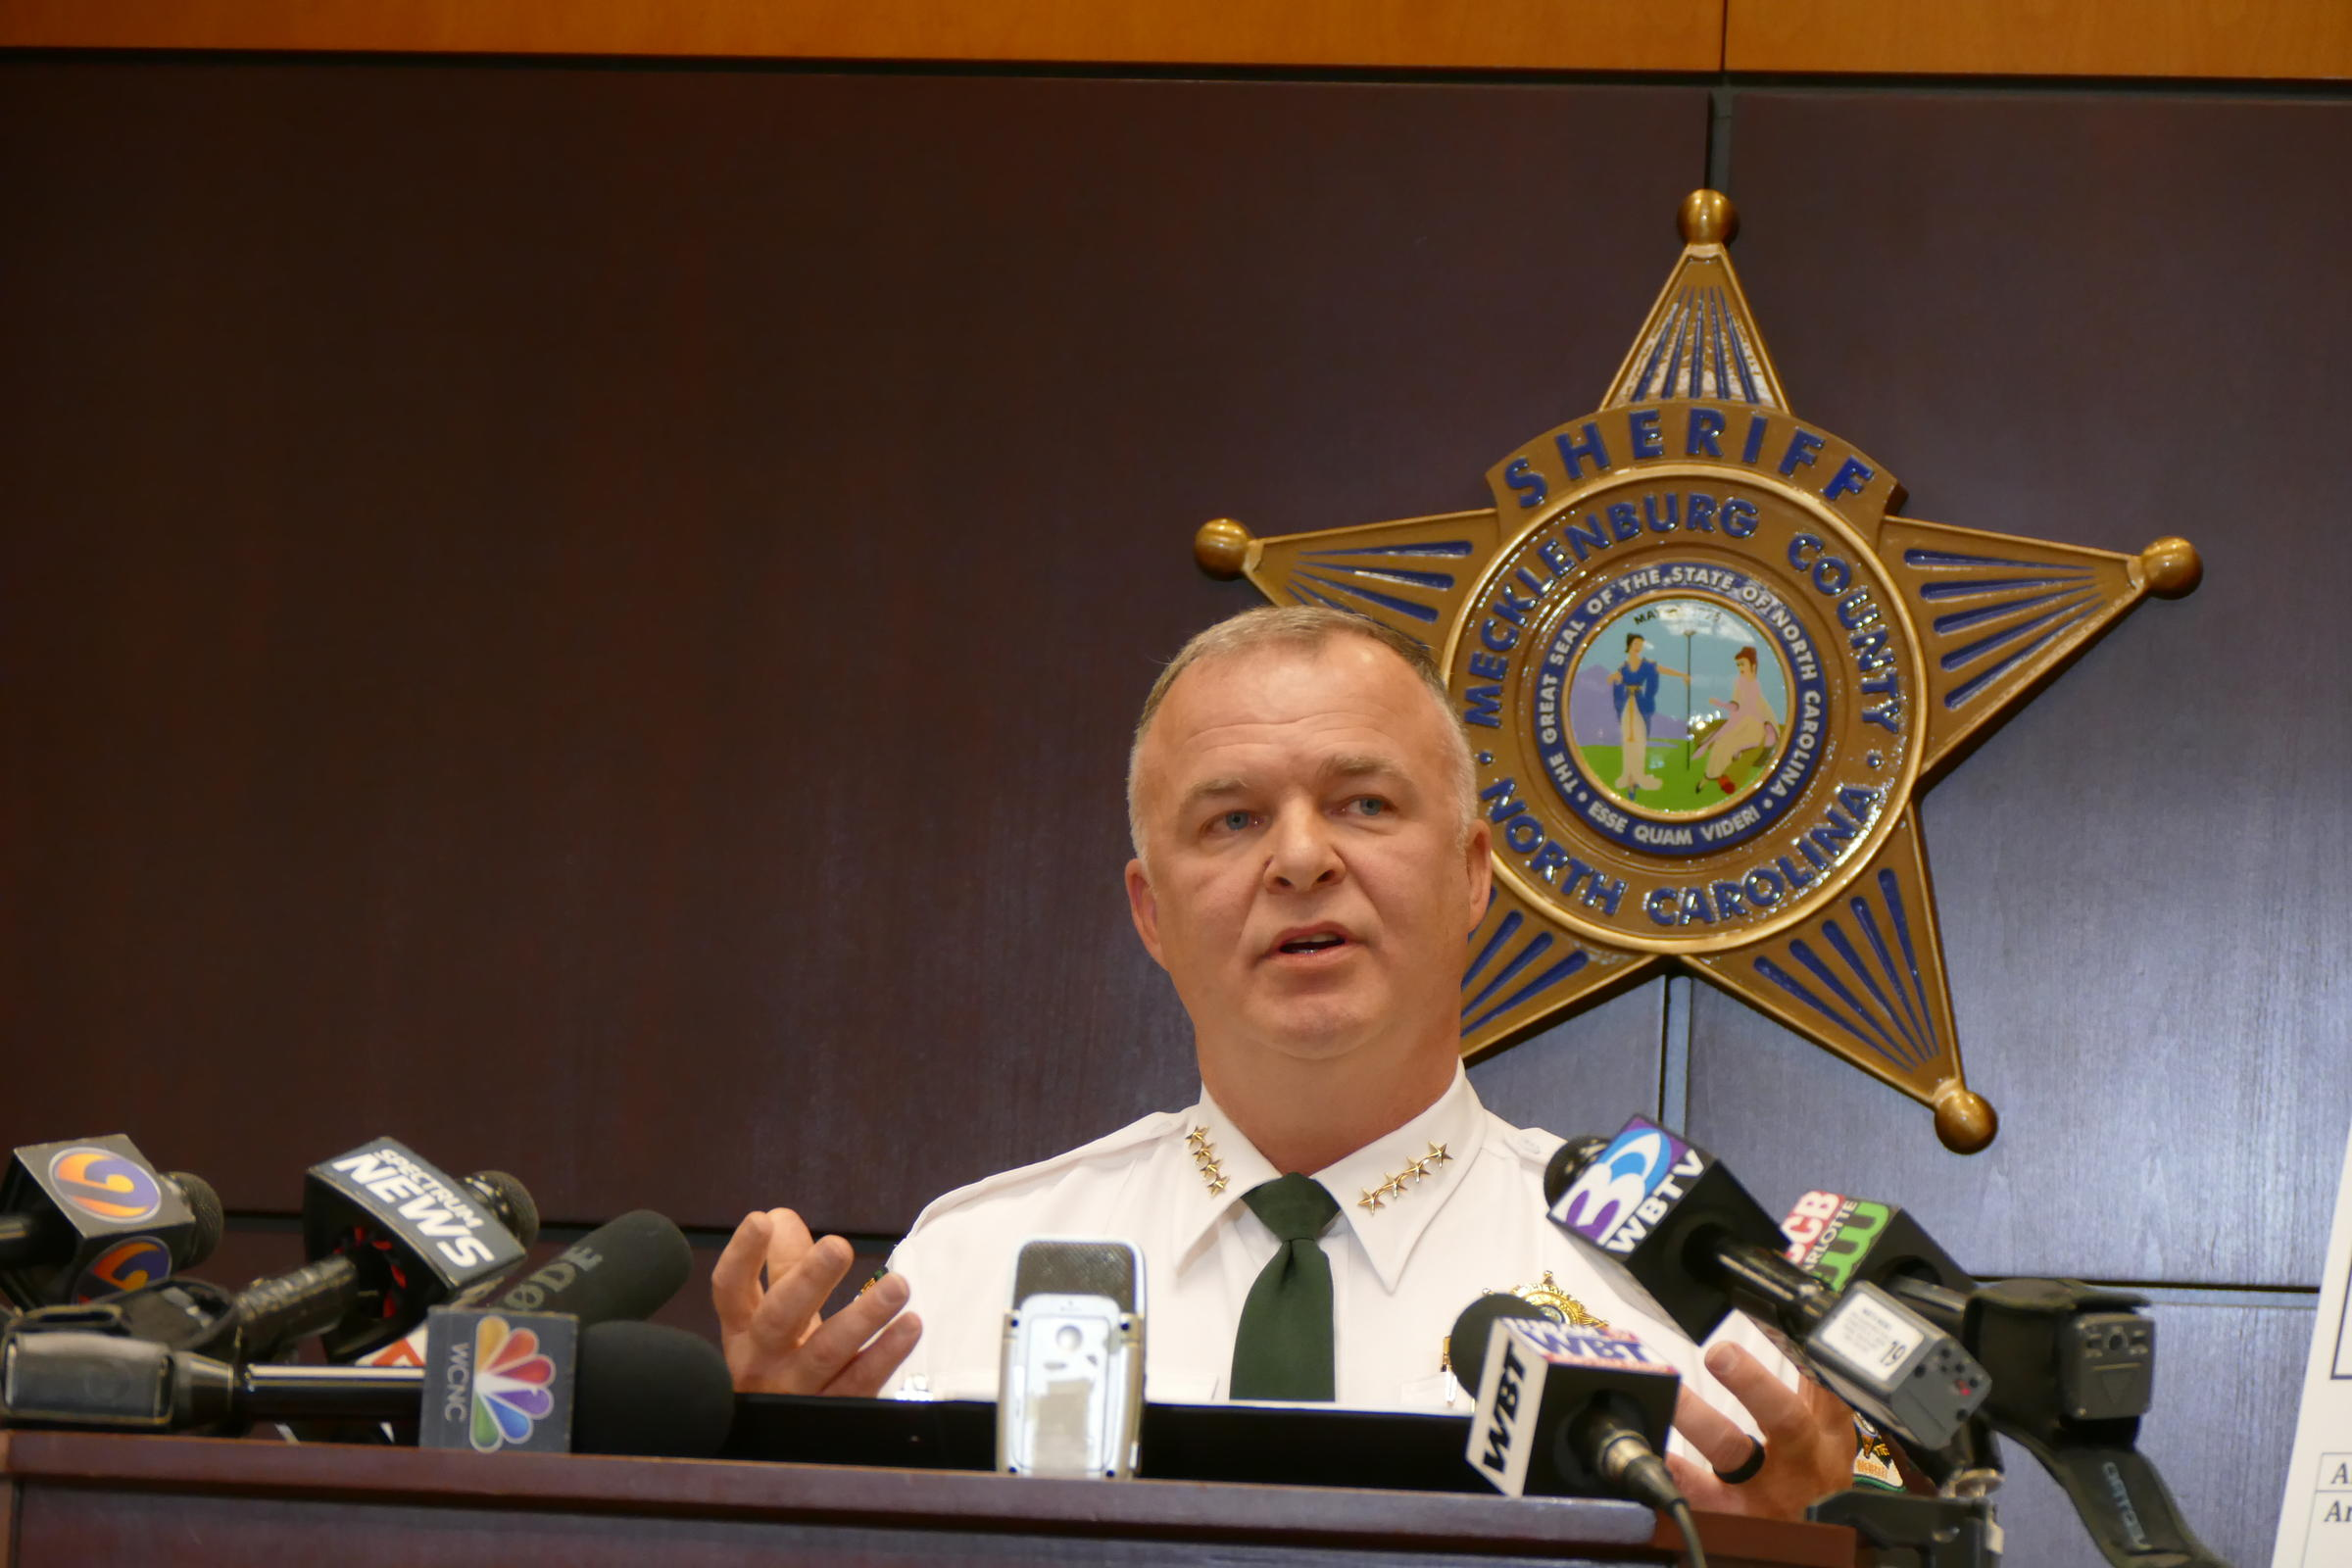 Meck County Sheriff Defends Program To Screen, Detain ...